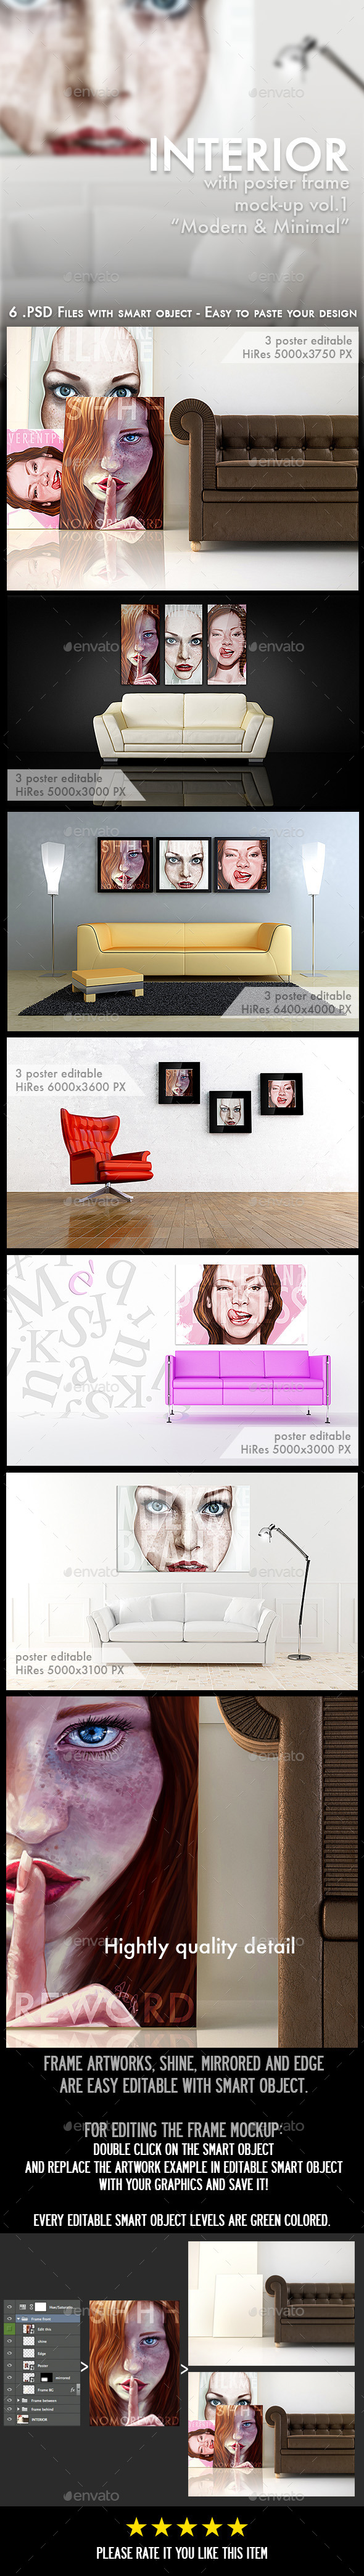 Interior with Poster and Frame Mock-Ups - Posters Print